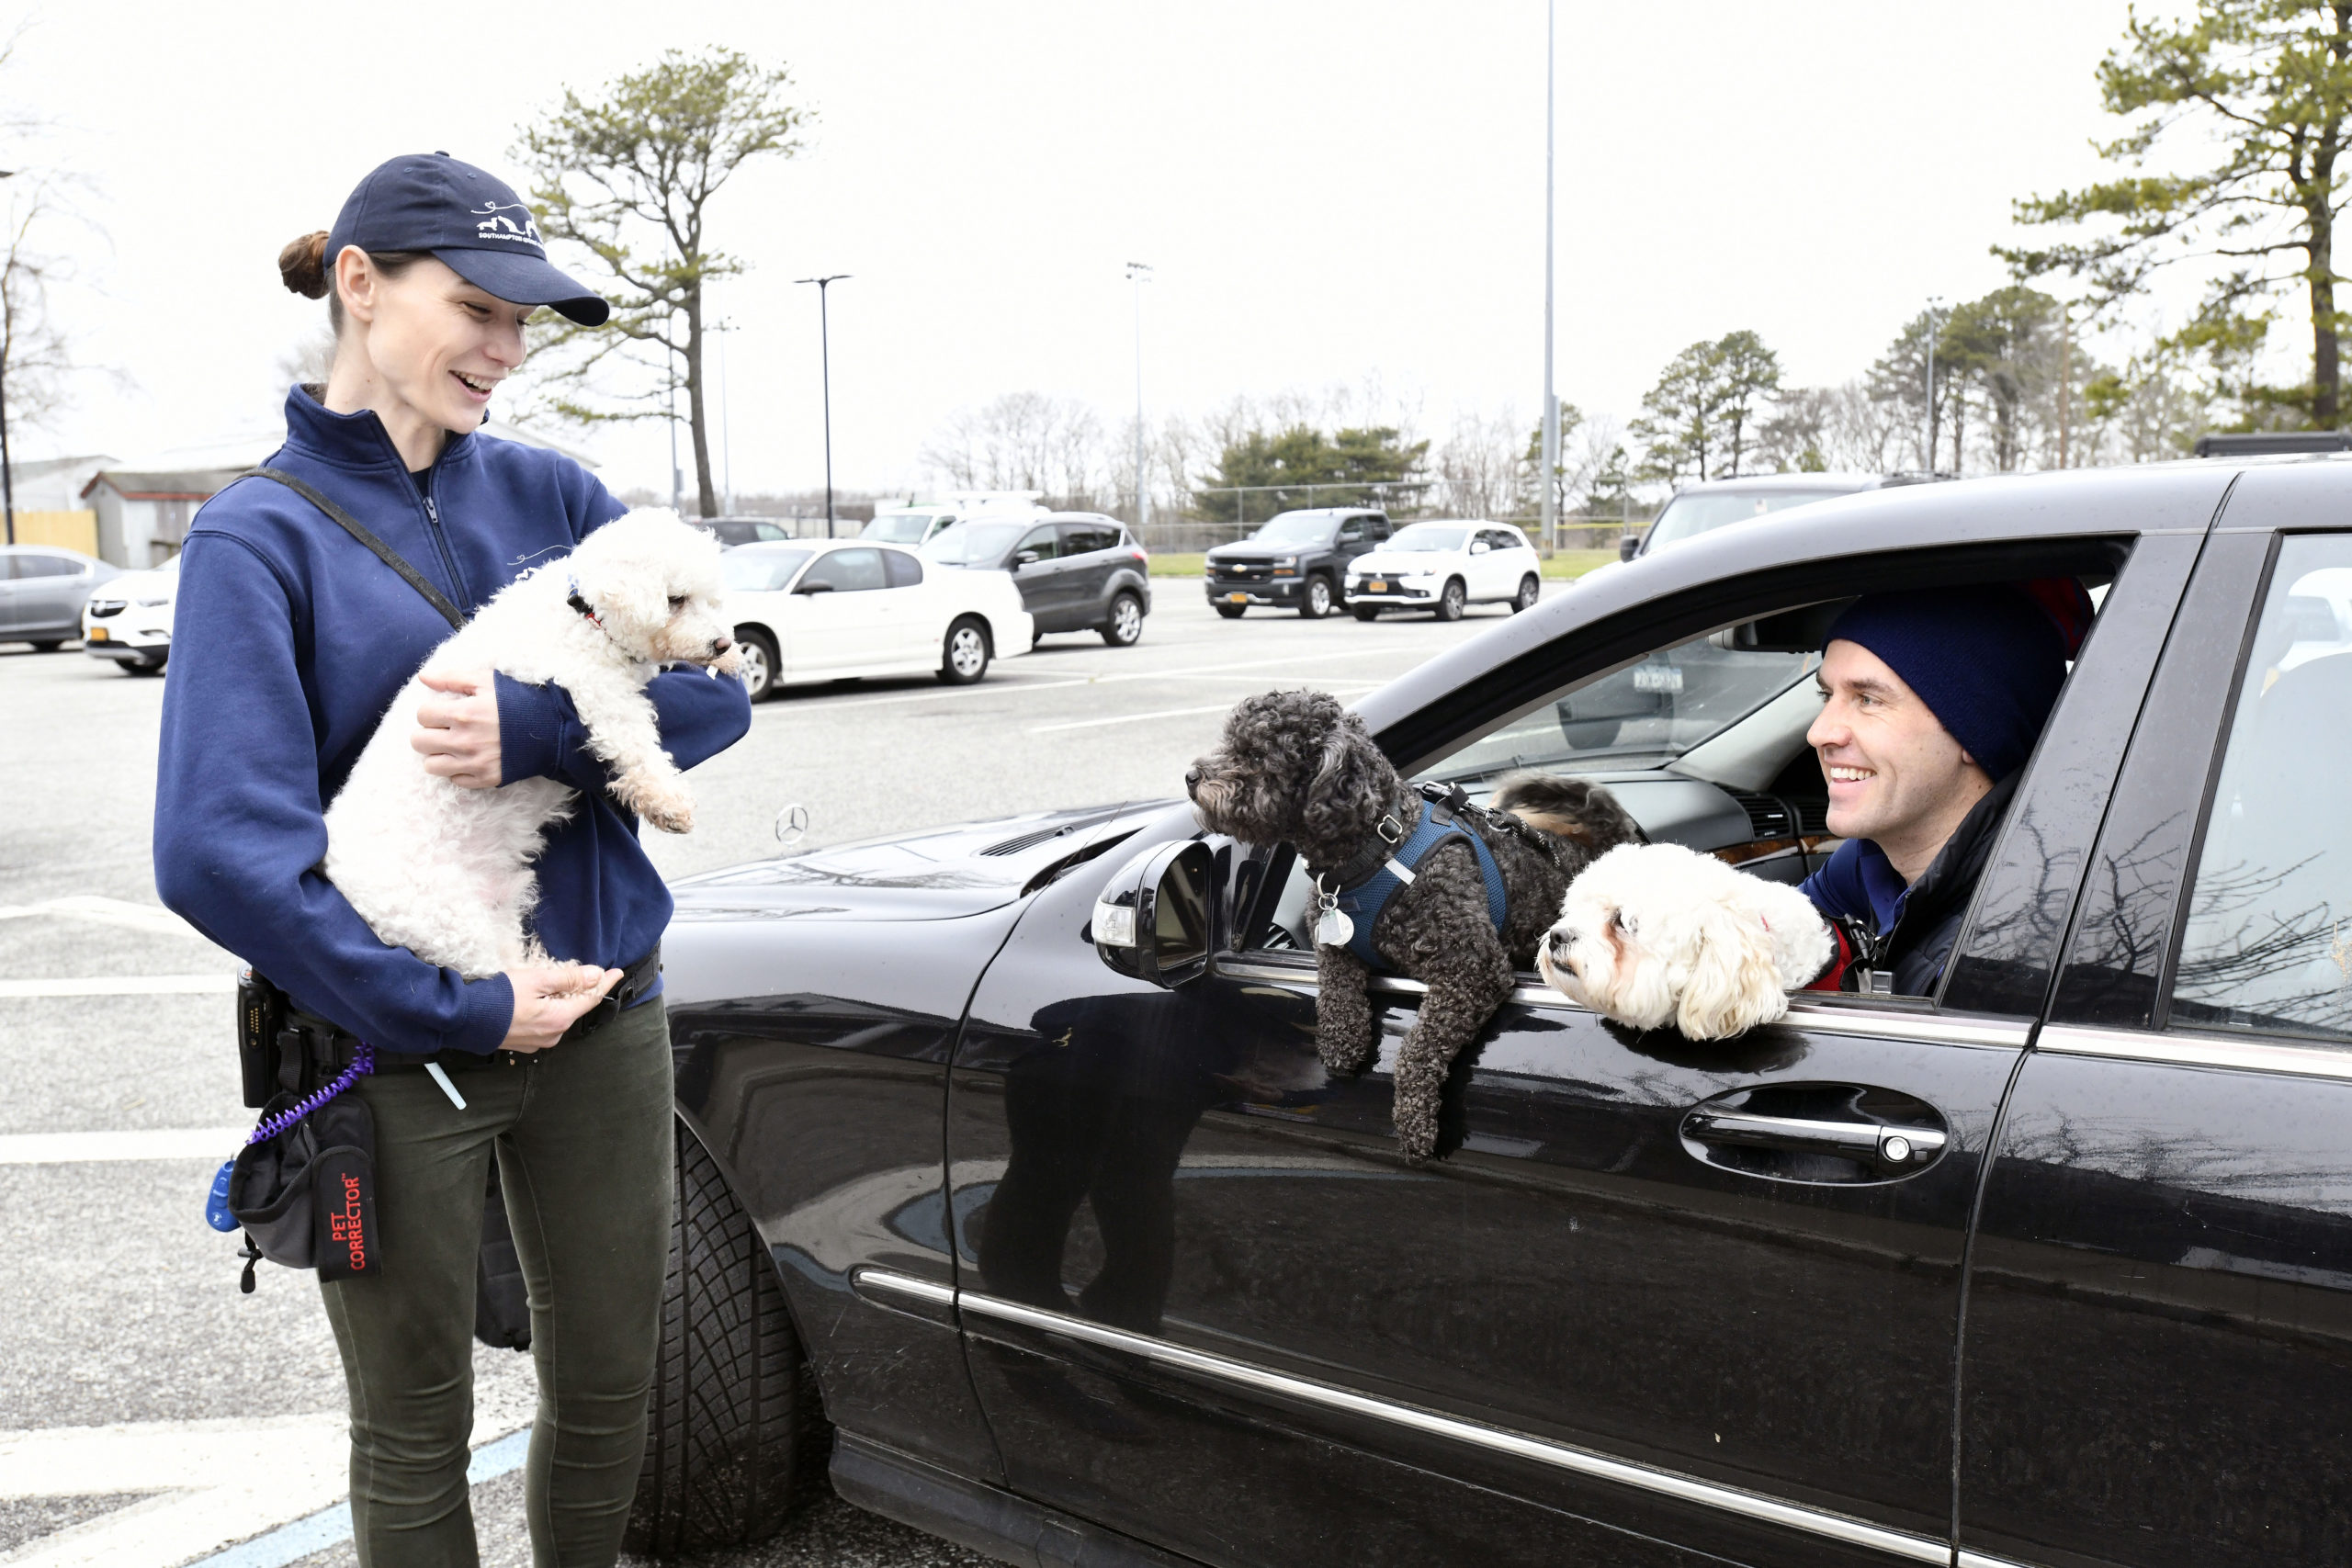 Tim Malone and his dogs meet with trainer Veronica Grzybowski and Gus Gus, a 10-year-old, poodle mix at The Southampton Animal Shelter on Friday as part of the roadside adoption/foster program.   DANA SHAW